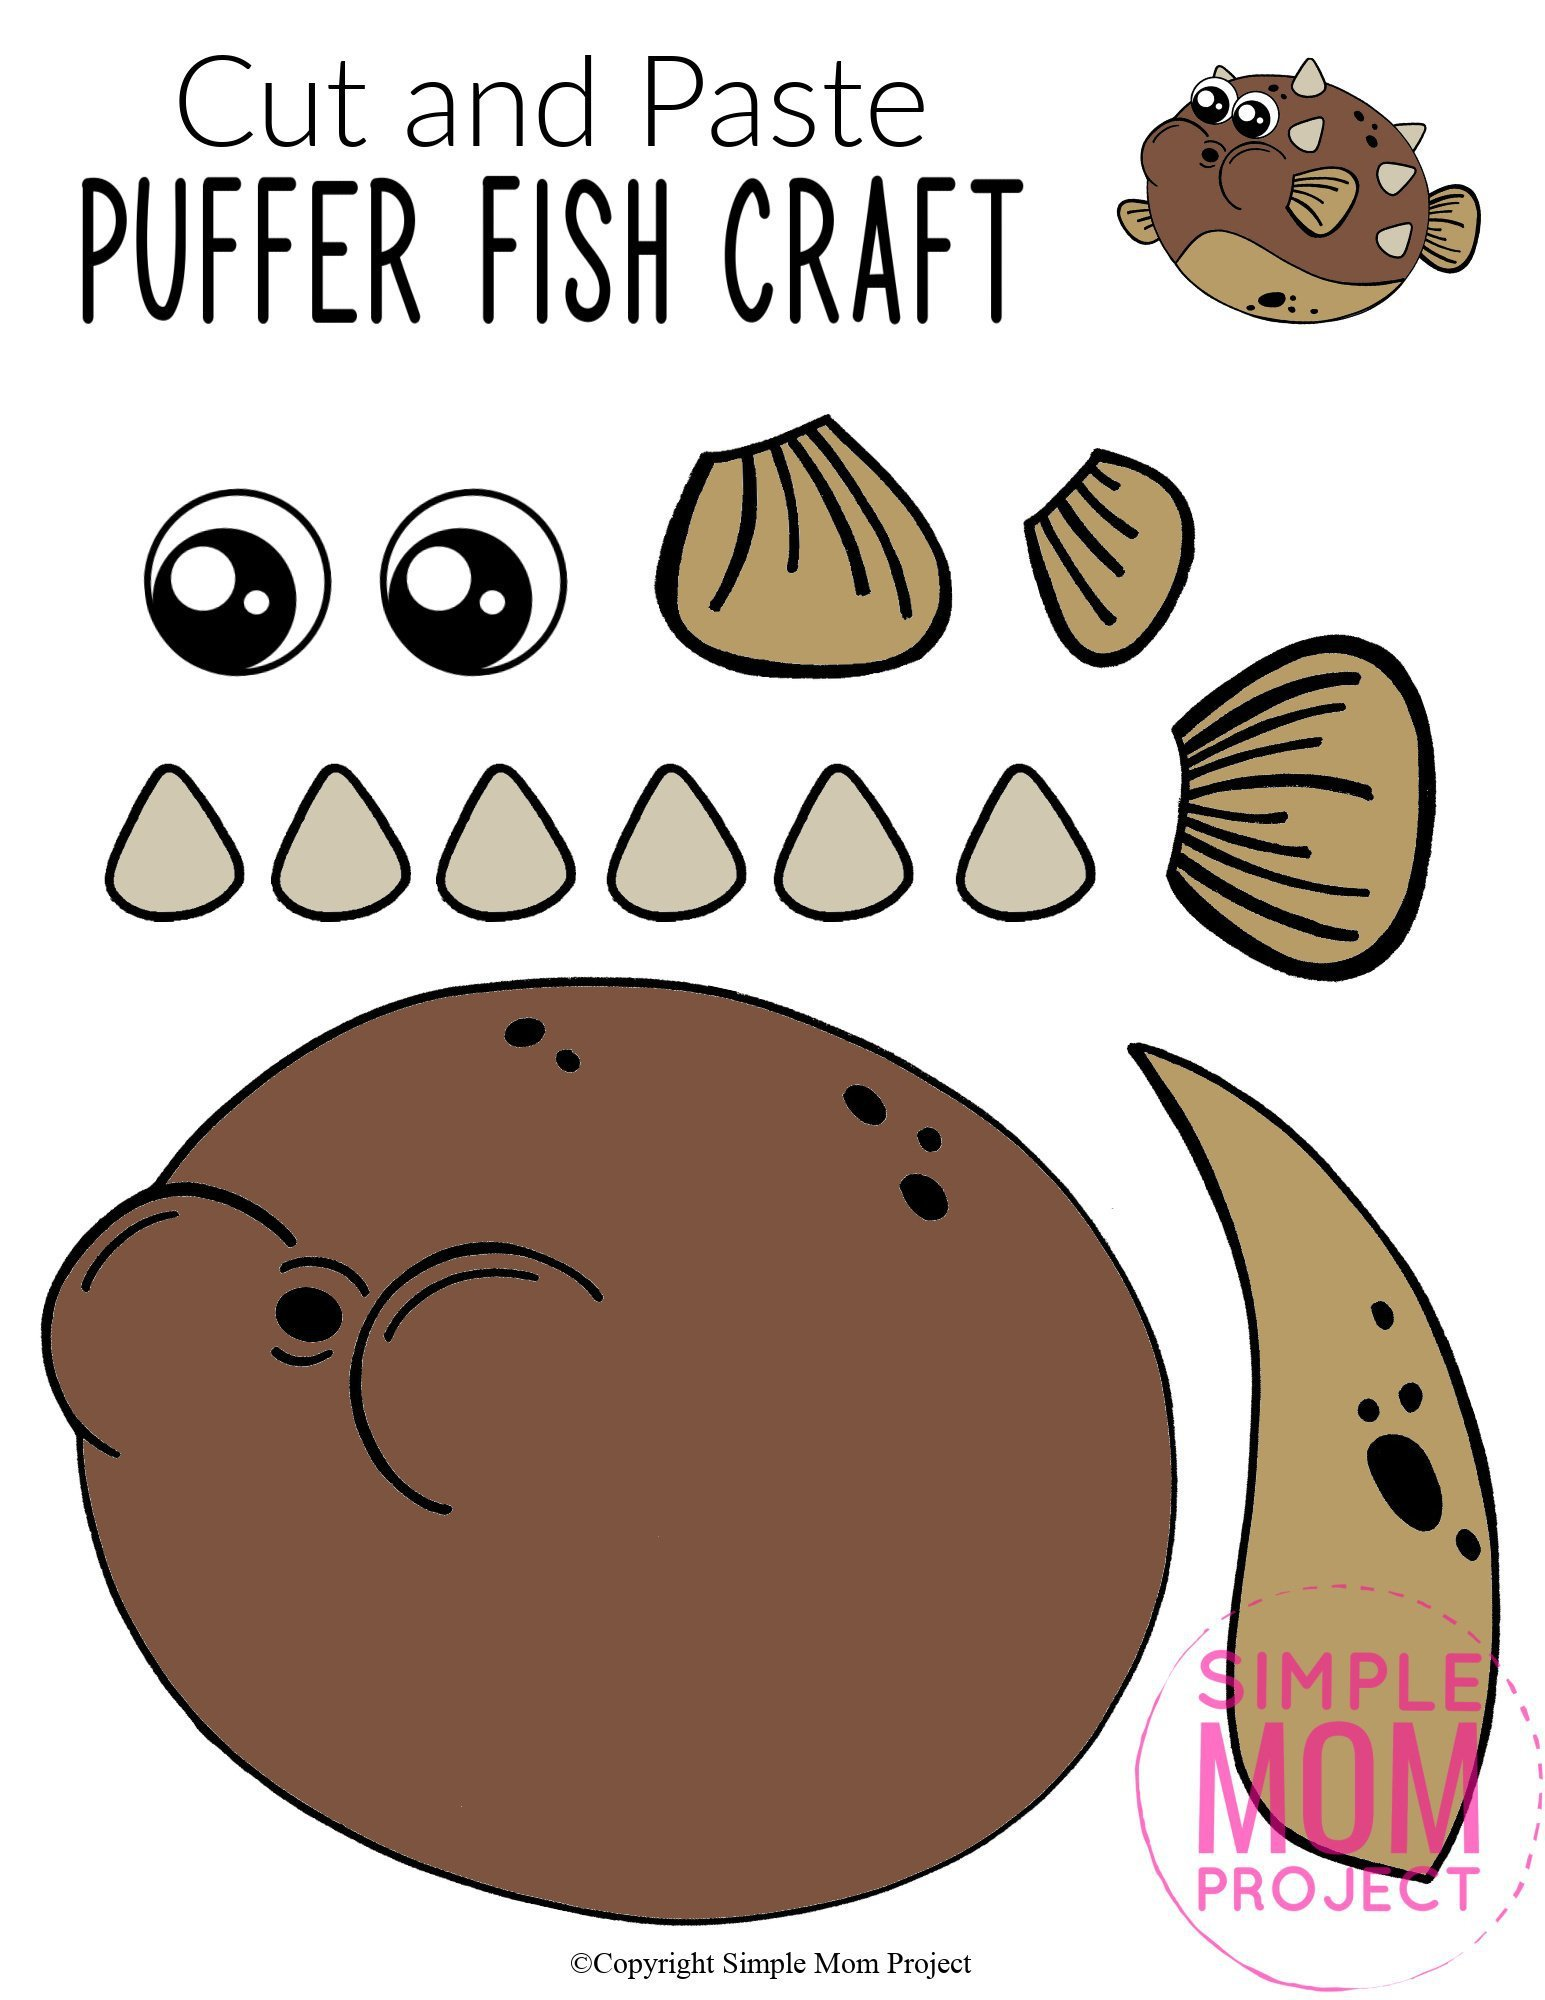 Free Printable Puffer Fish Ocean Animal Craft for Kids, preschoolers and toddlers puffer fish template